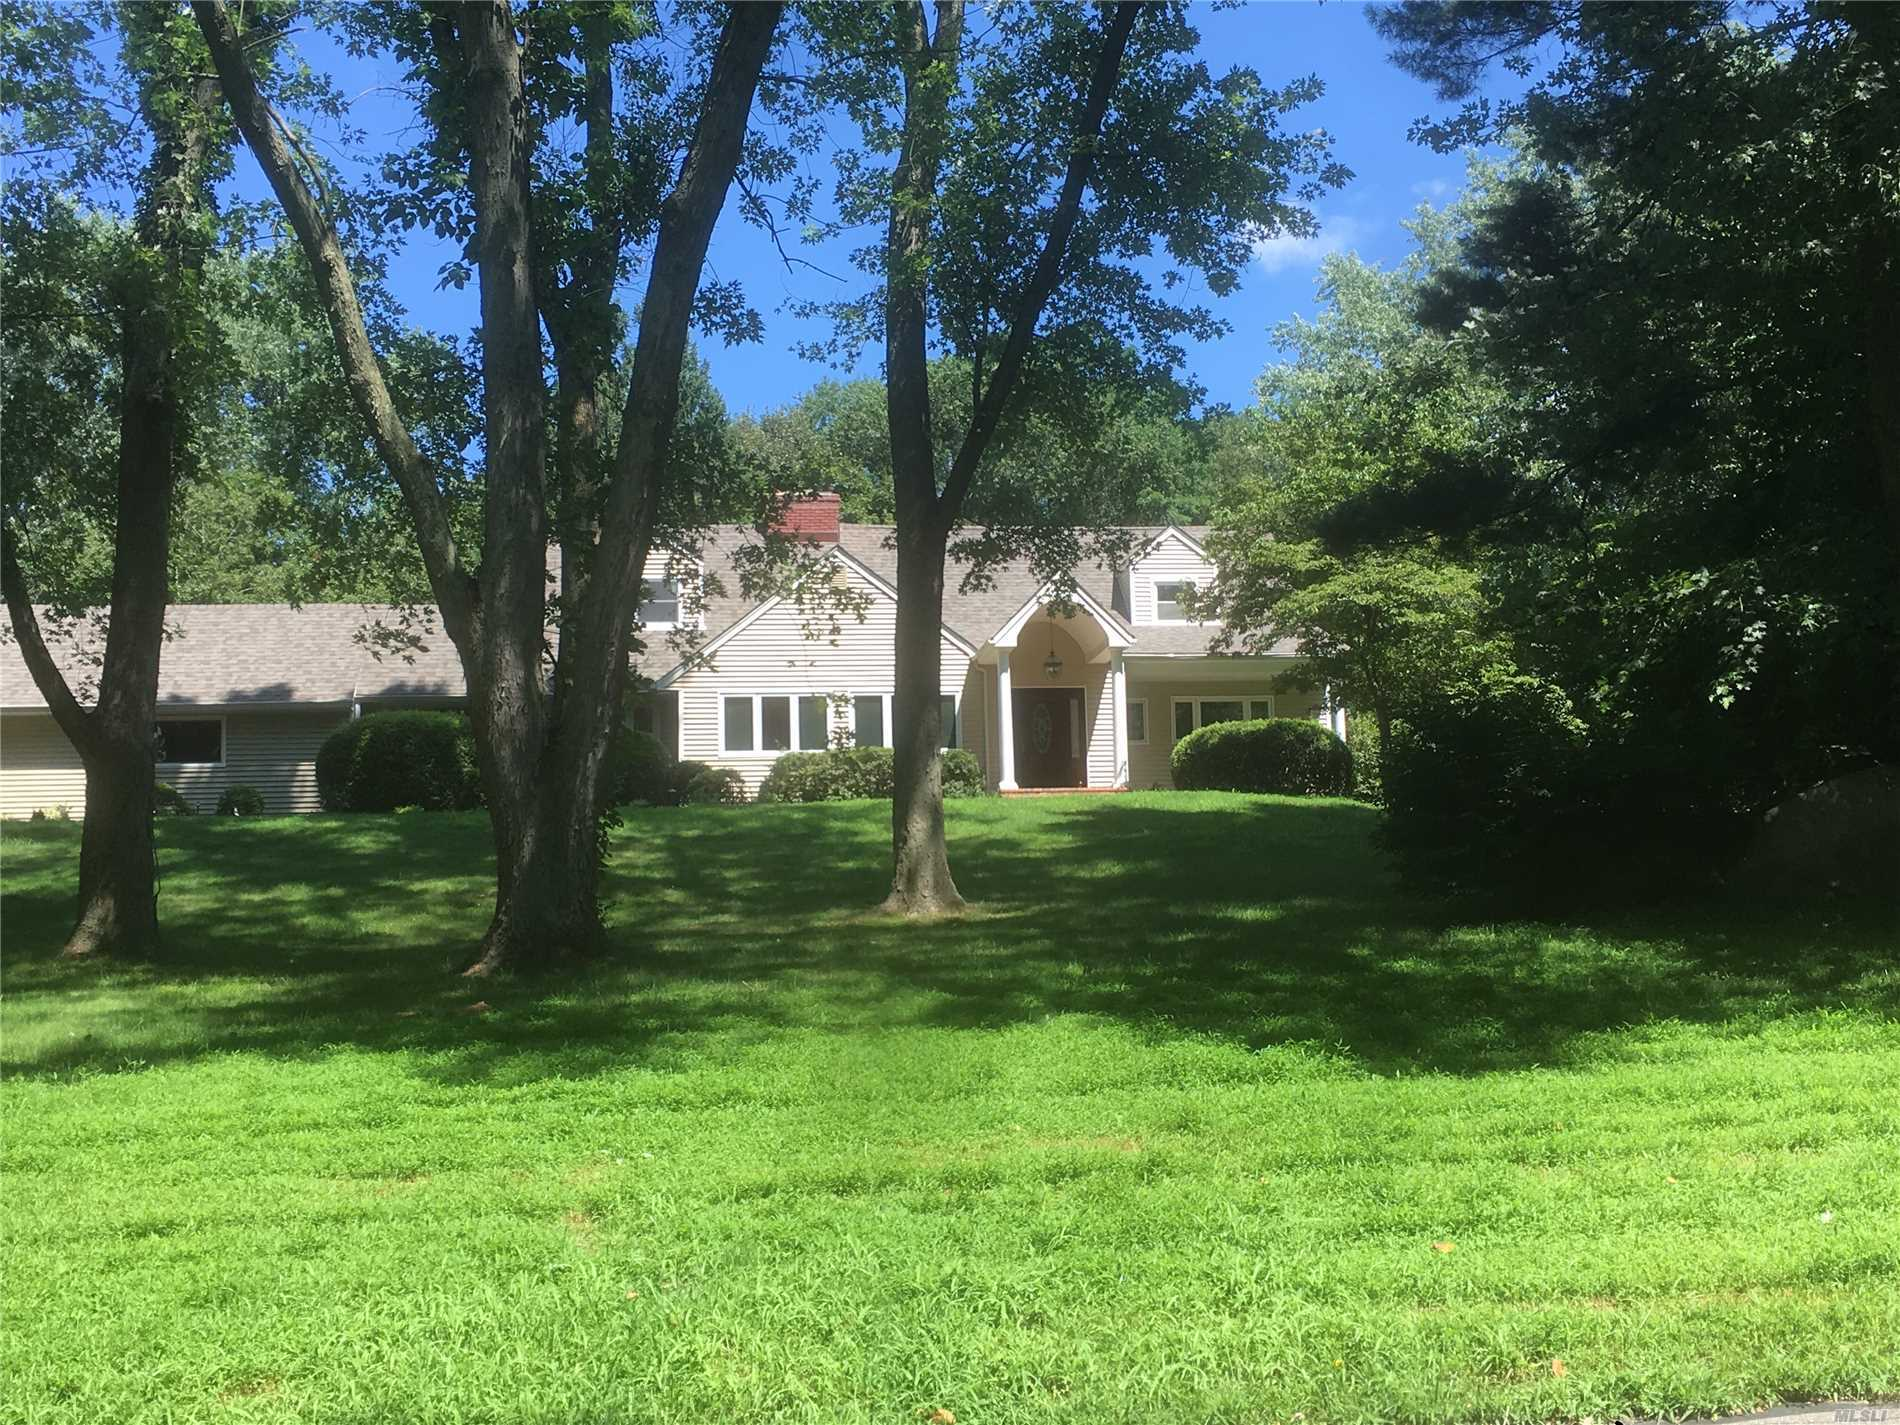 In The Village Of Upper Brookville This 10 Rm, 5 Bedroom Set In A Private Location. Has Been Updated And Ready To Rent . Updates Include Roof, Siding !Finish Wood Floors, Bathrooms, New Pool Liner., Pavers On The Walkway